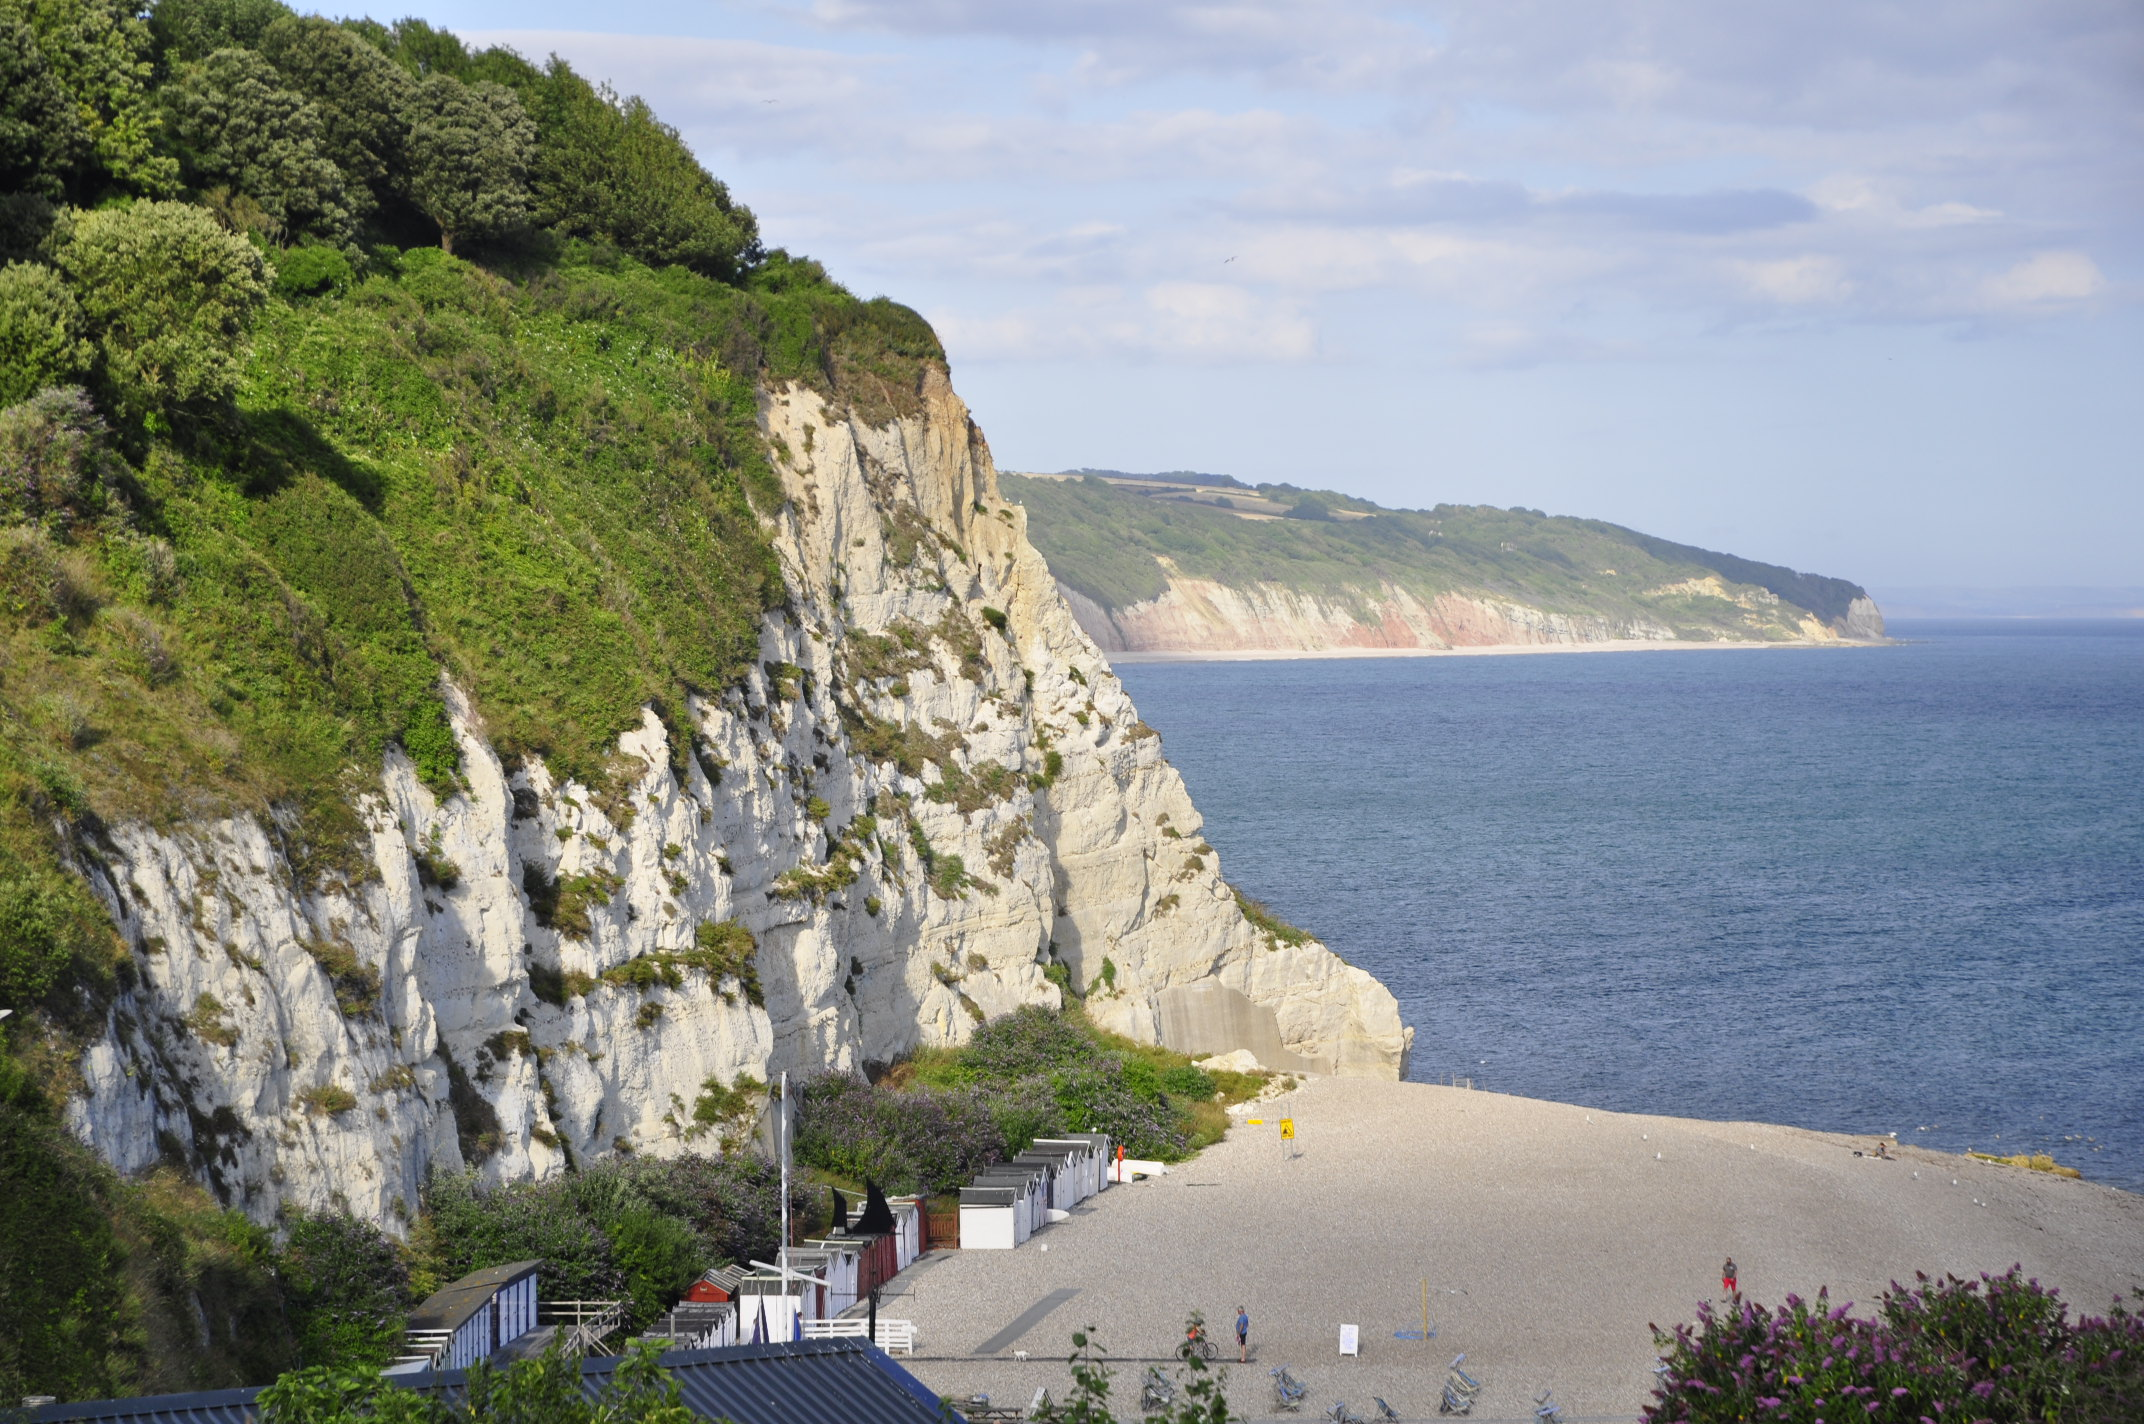 The white cliffs of Beer, with the flint-pebble beach in front. In the background are the reddish Triassic sandstone near Seaton. In geo-speak; Beer is in the downthrown side, the hangingwall of a large fault, while the Triassic is in the footwall.